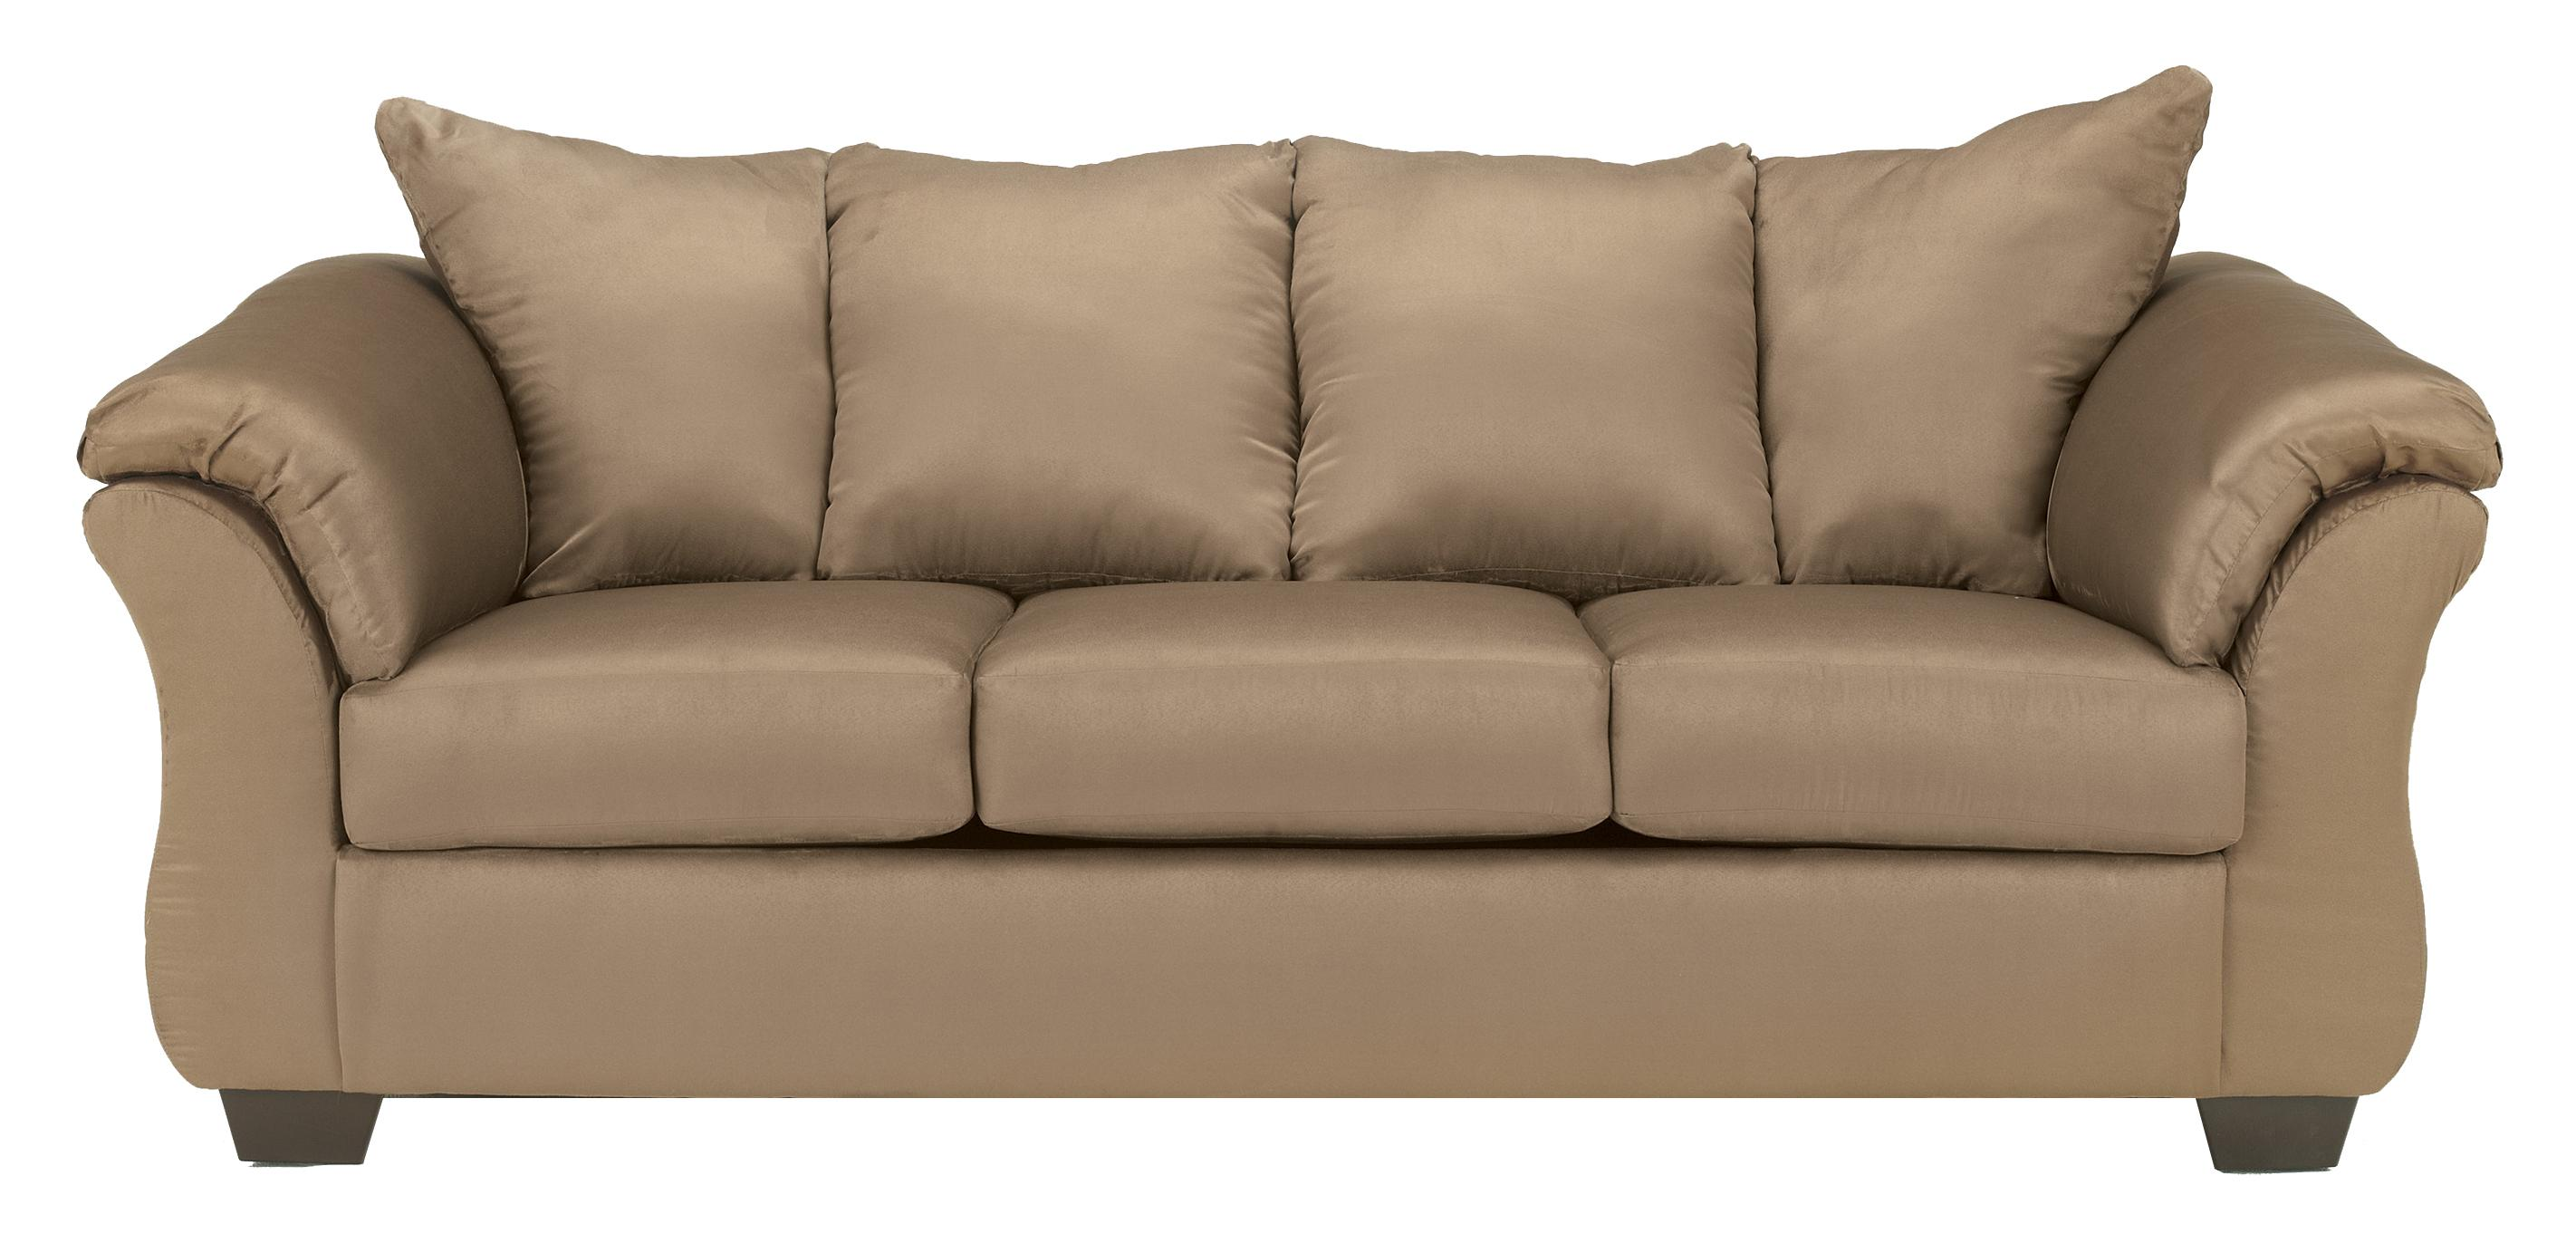 Darcy - Mocha Stationary Sofa by Signature Design by Ashley at Standard Furniture